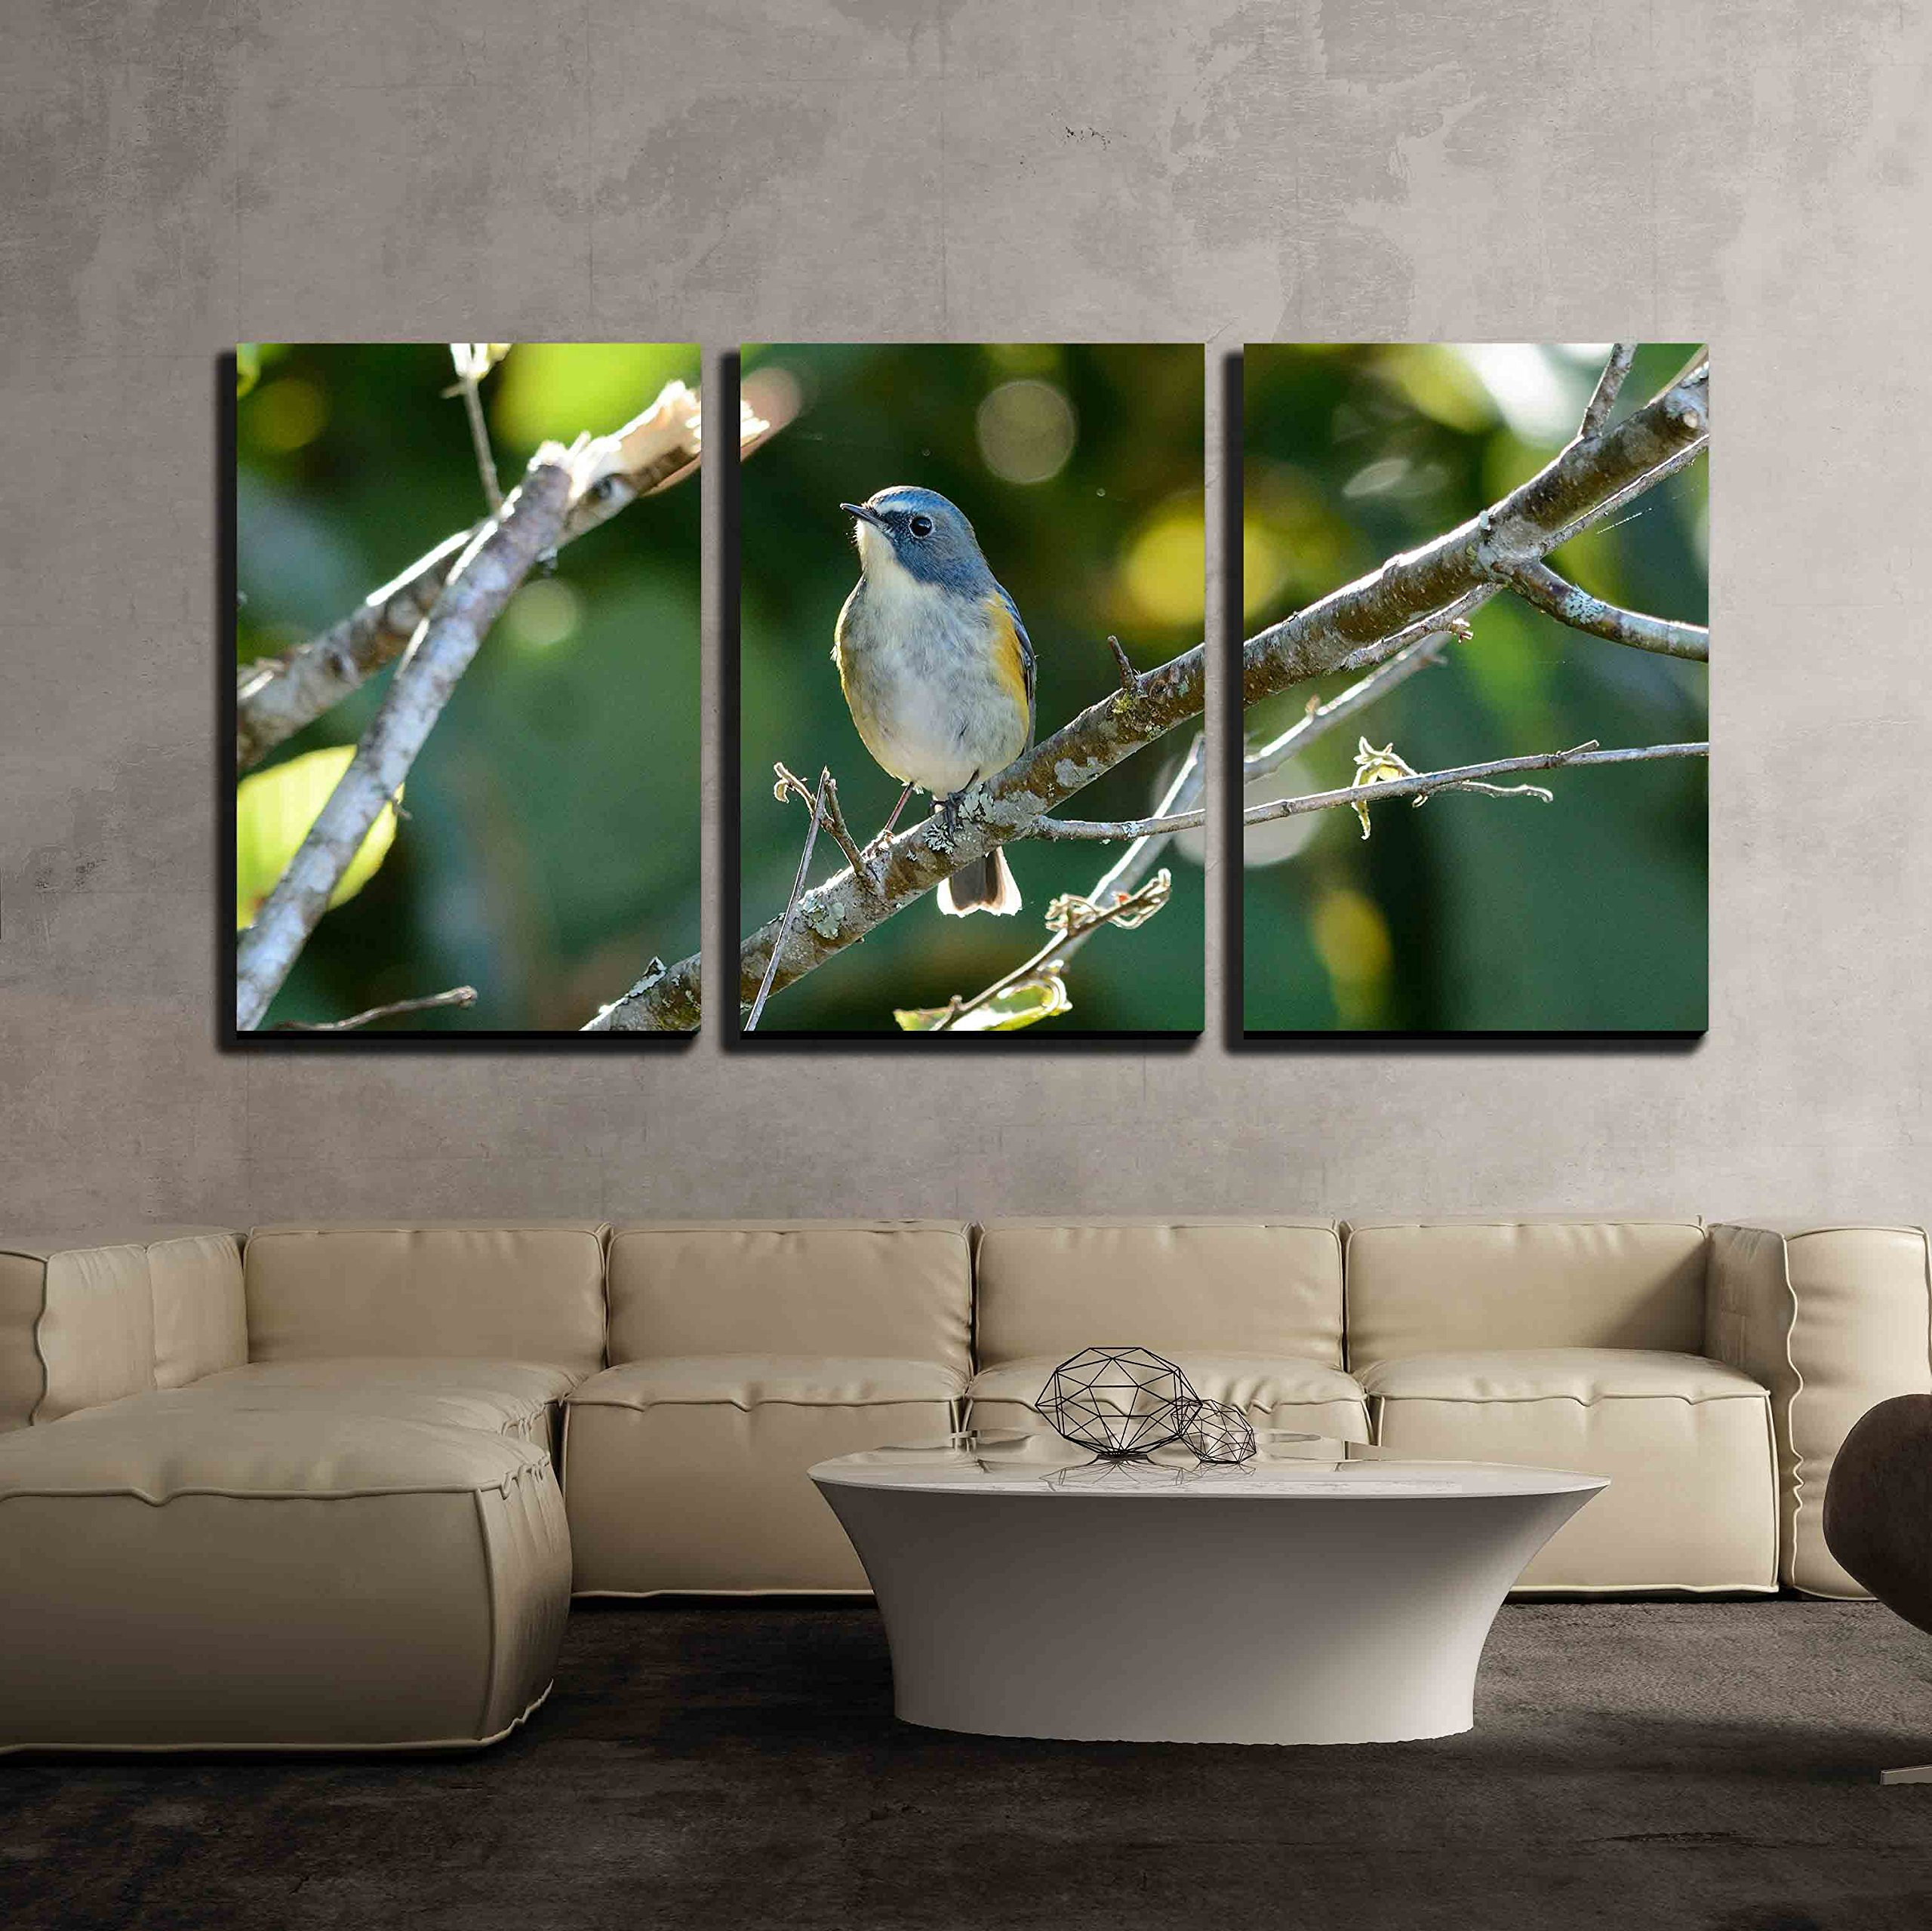 wall26 - 3 Piece Canvas Wall Art - beautiful male Red-flanked Bluetail Tarsiger cyanurus in Thai forest - Modern Home Decor Stretched and Framed Ready to Hang - 24''x36''x3 Panels by wall26